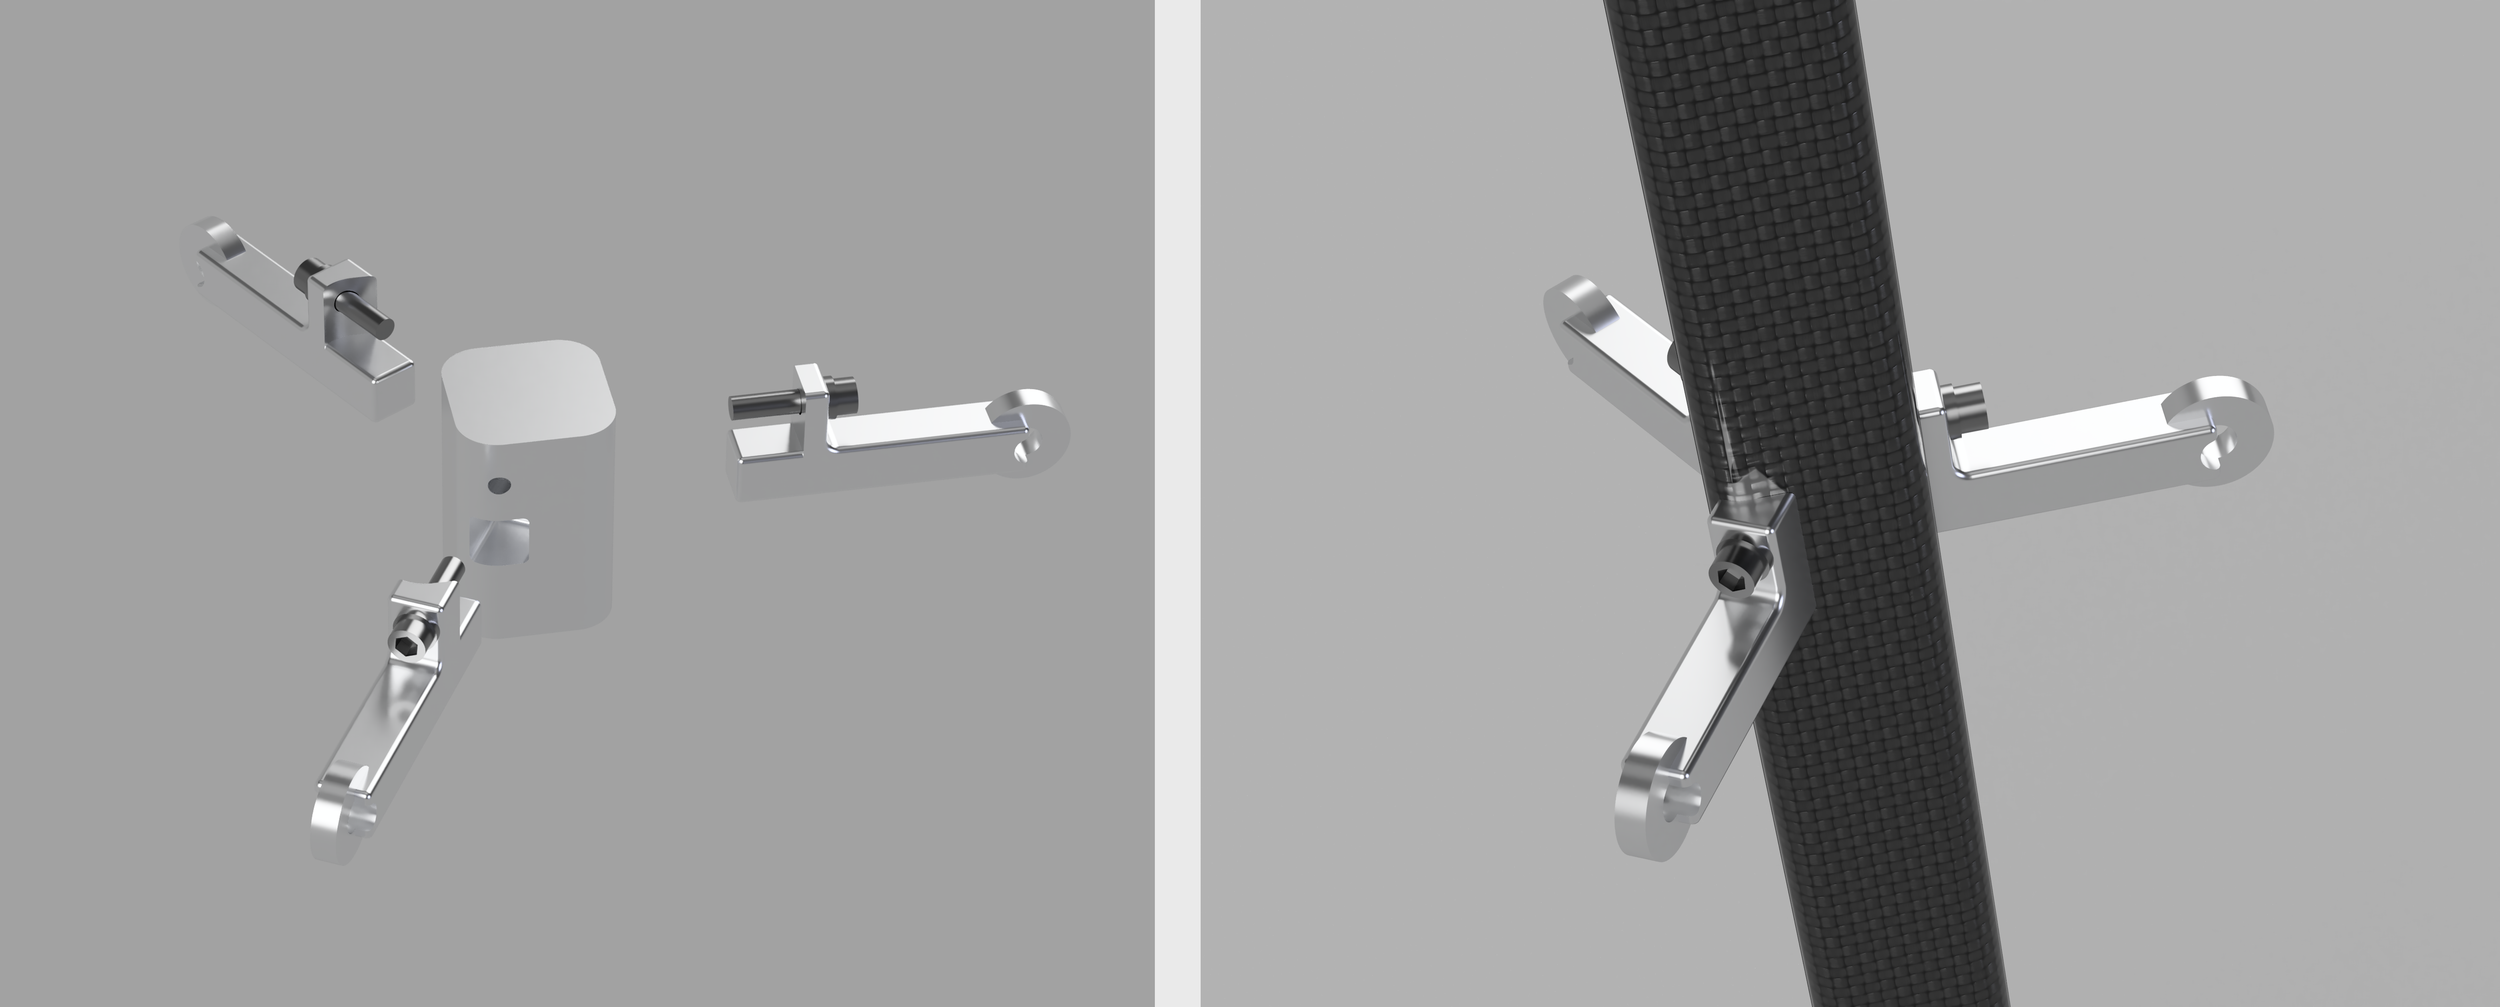 Chute tether composite.png